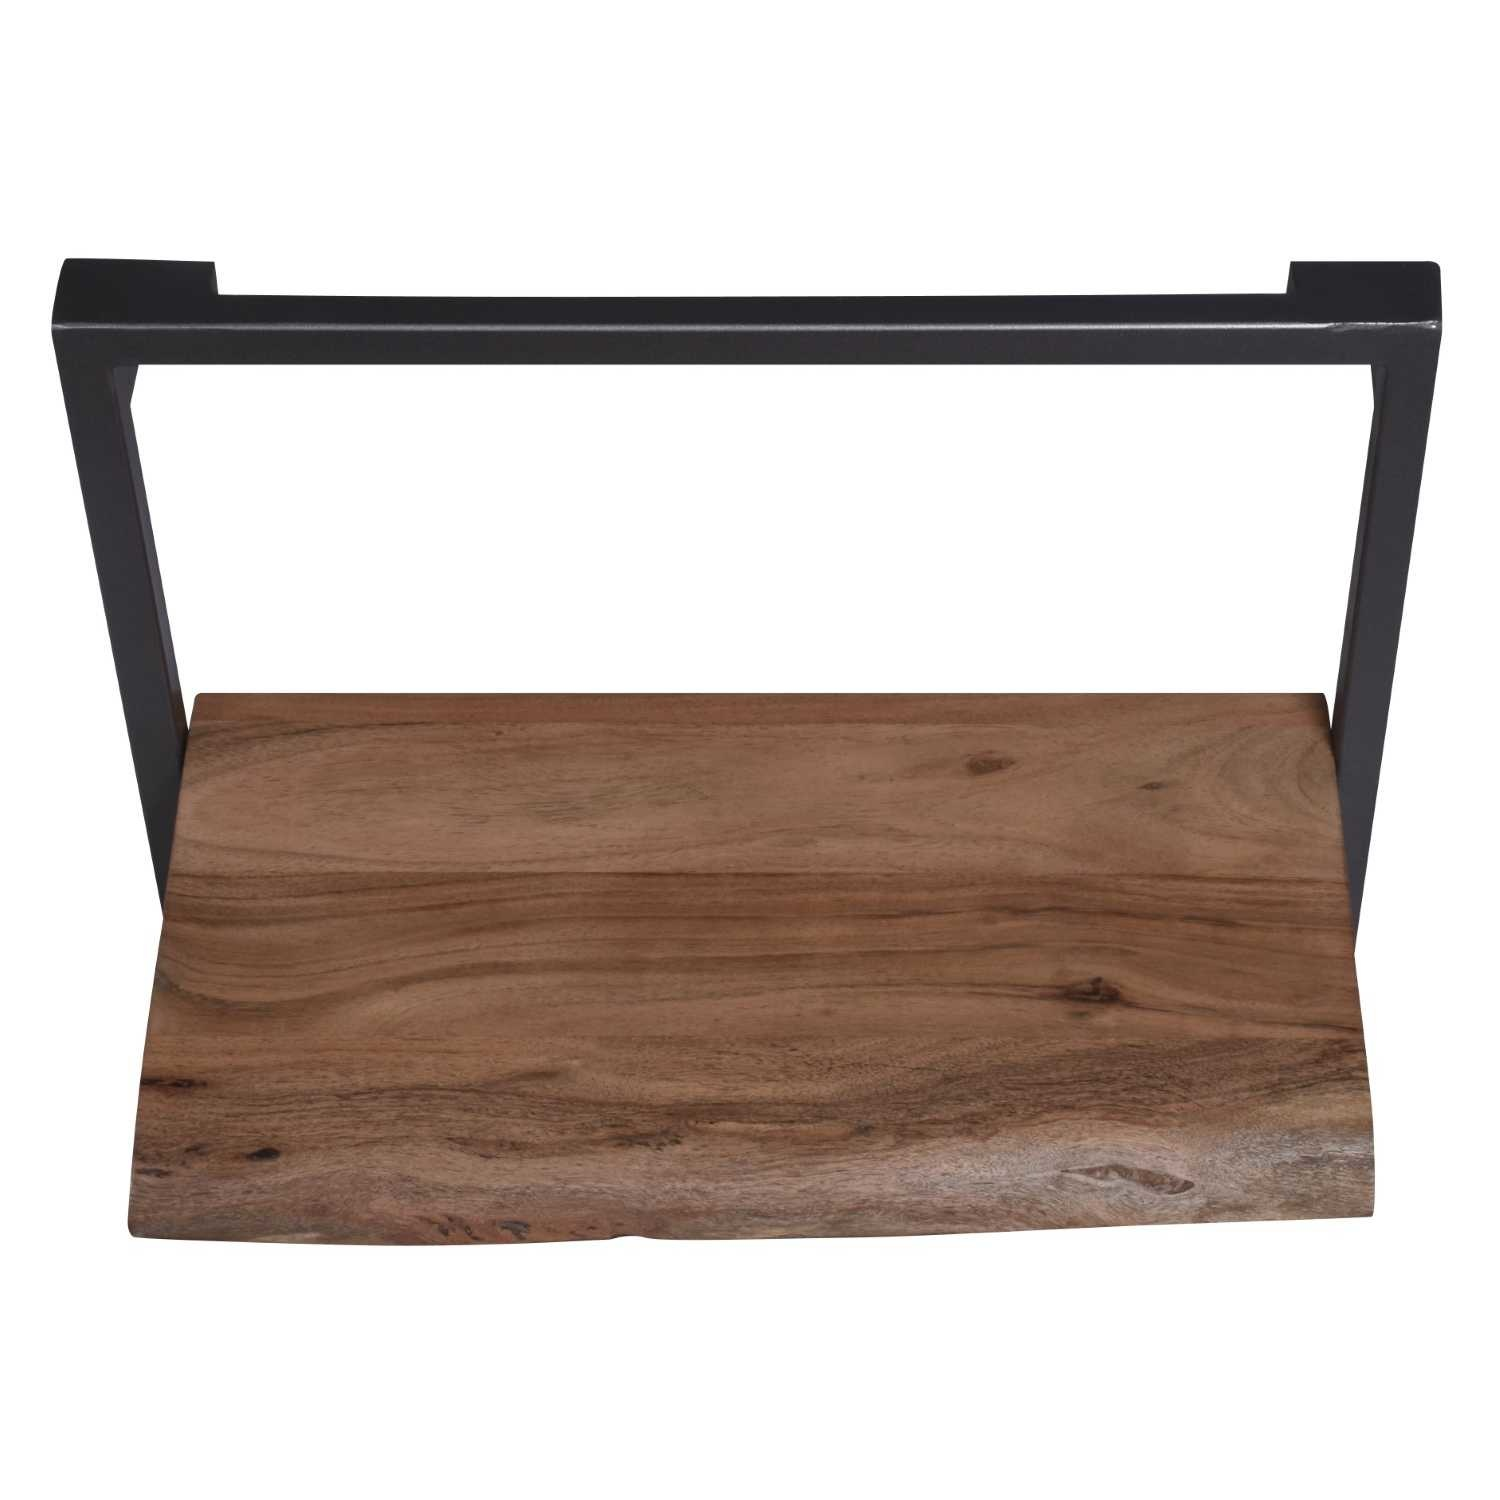 Besp-Oak Arkwright Industrial Style Iron and Wood Framed Shelf